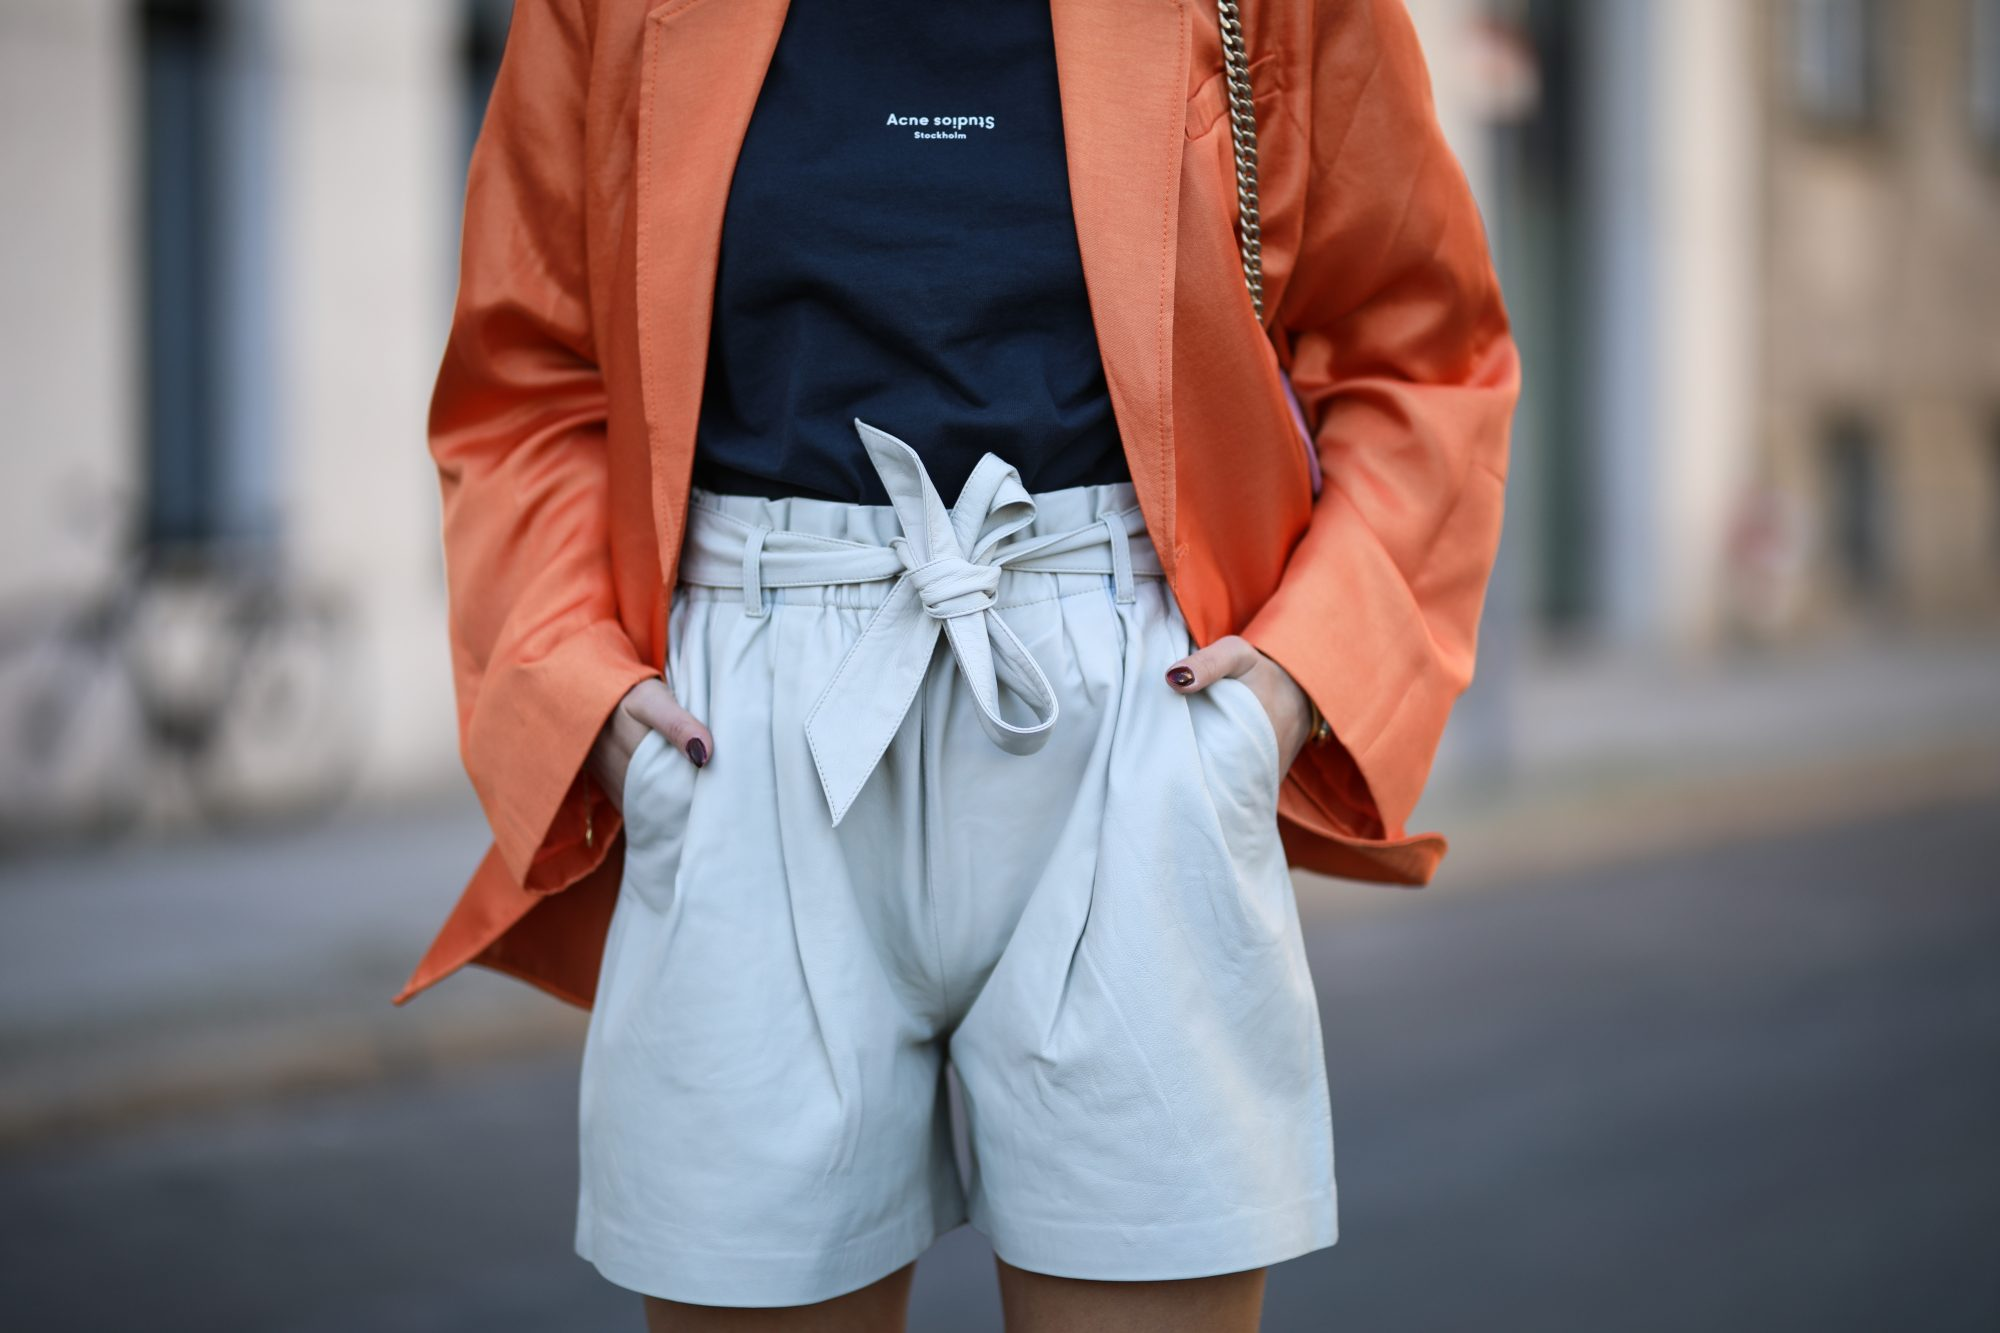 Summer Outfits, Shorts and Blazer Outfit Idea